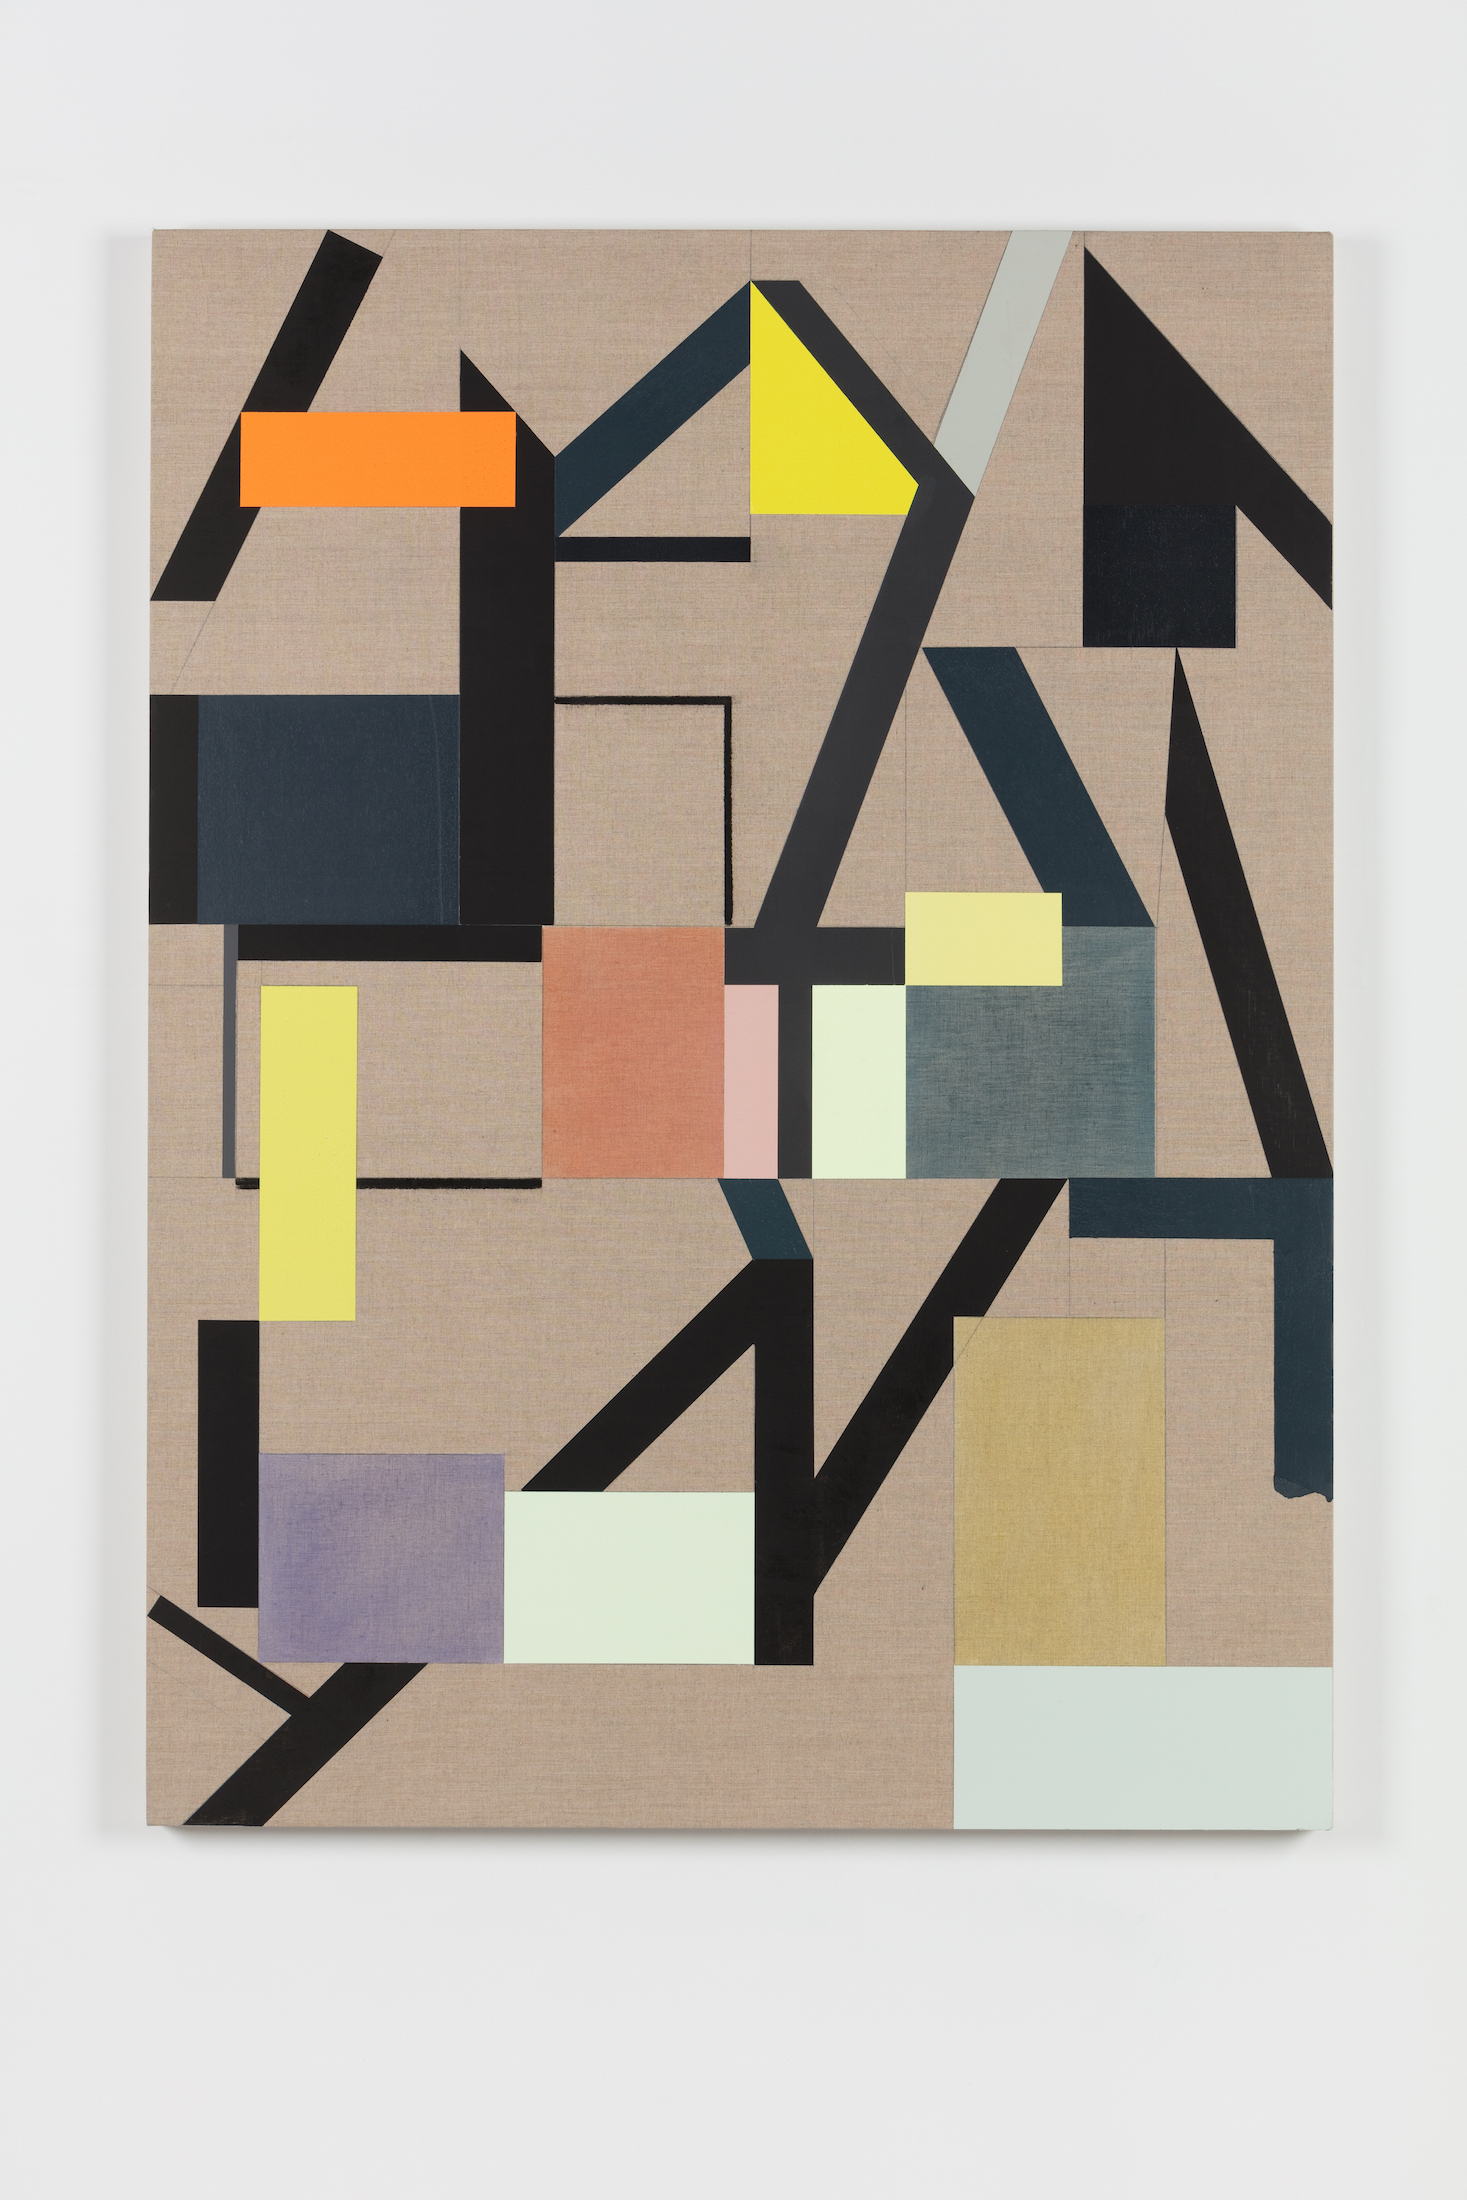 Andrew Bick Artist Interview Judge Jackson's Open Painting Prize